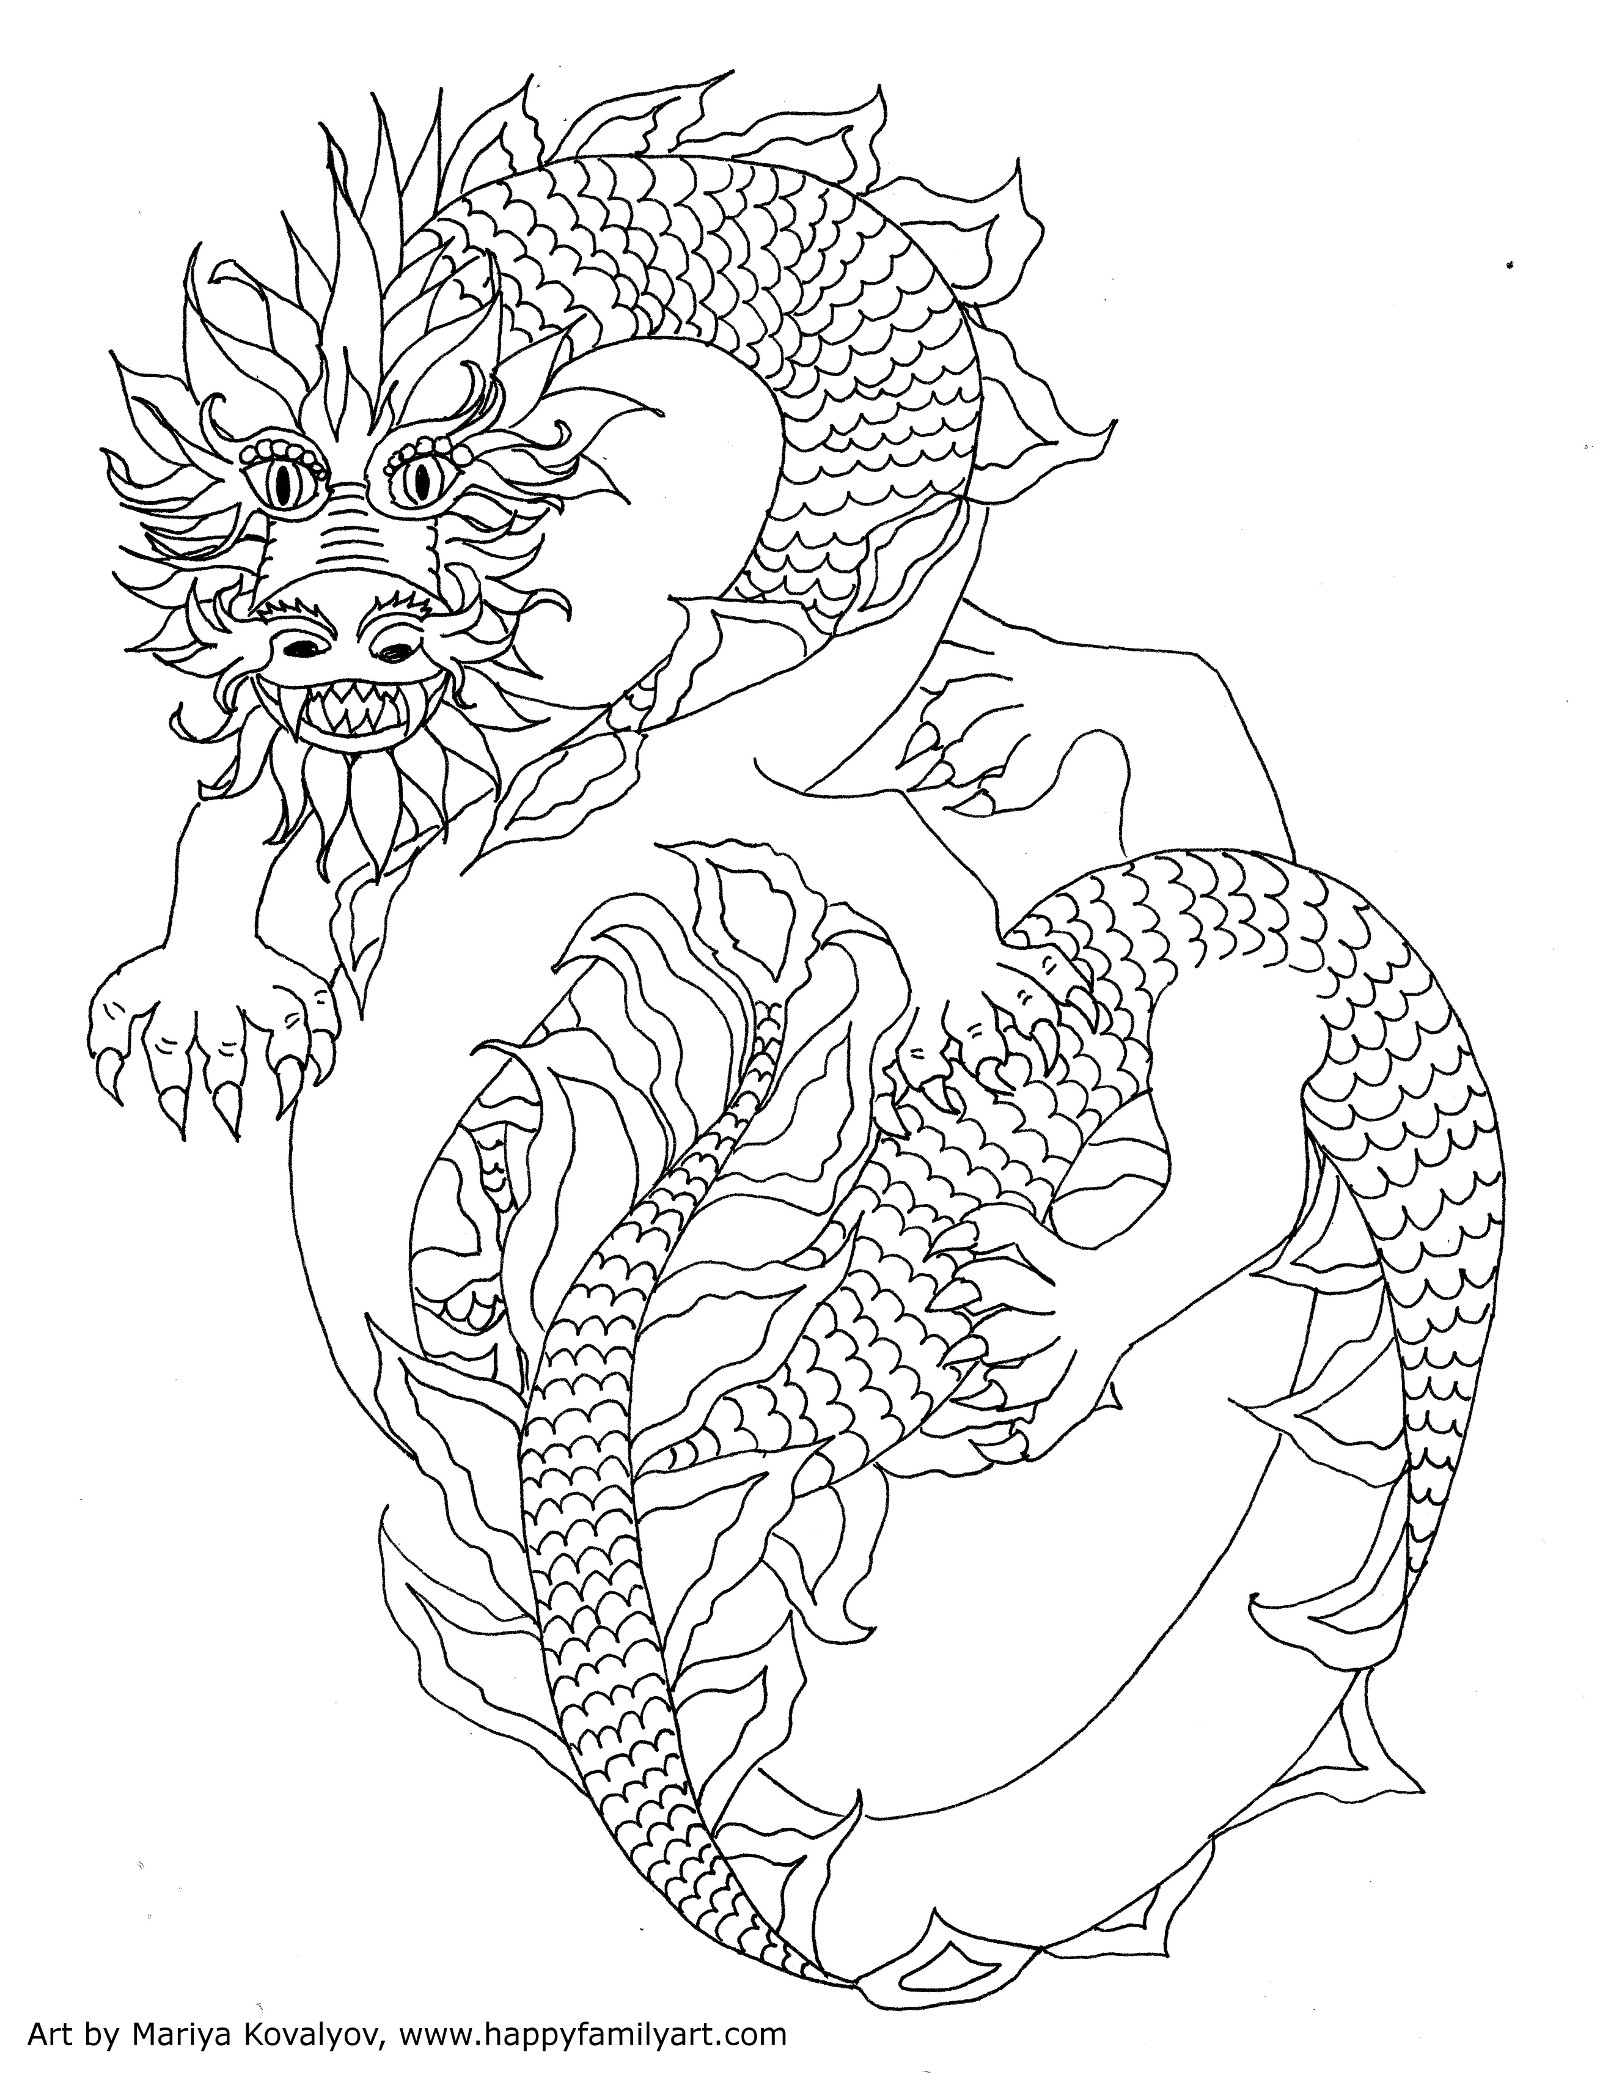 o keefe coloring pages - photo #23